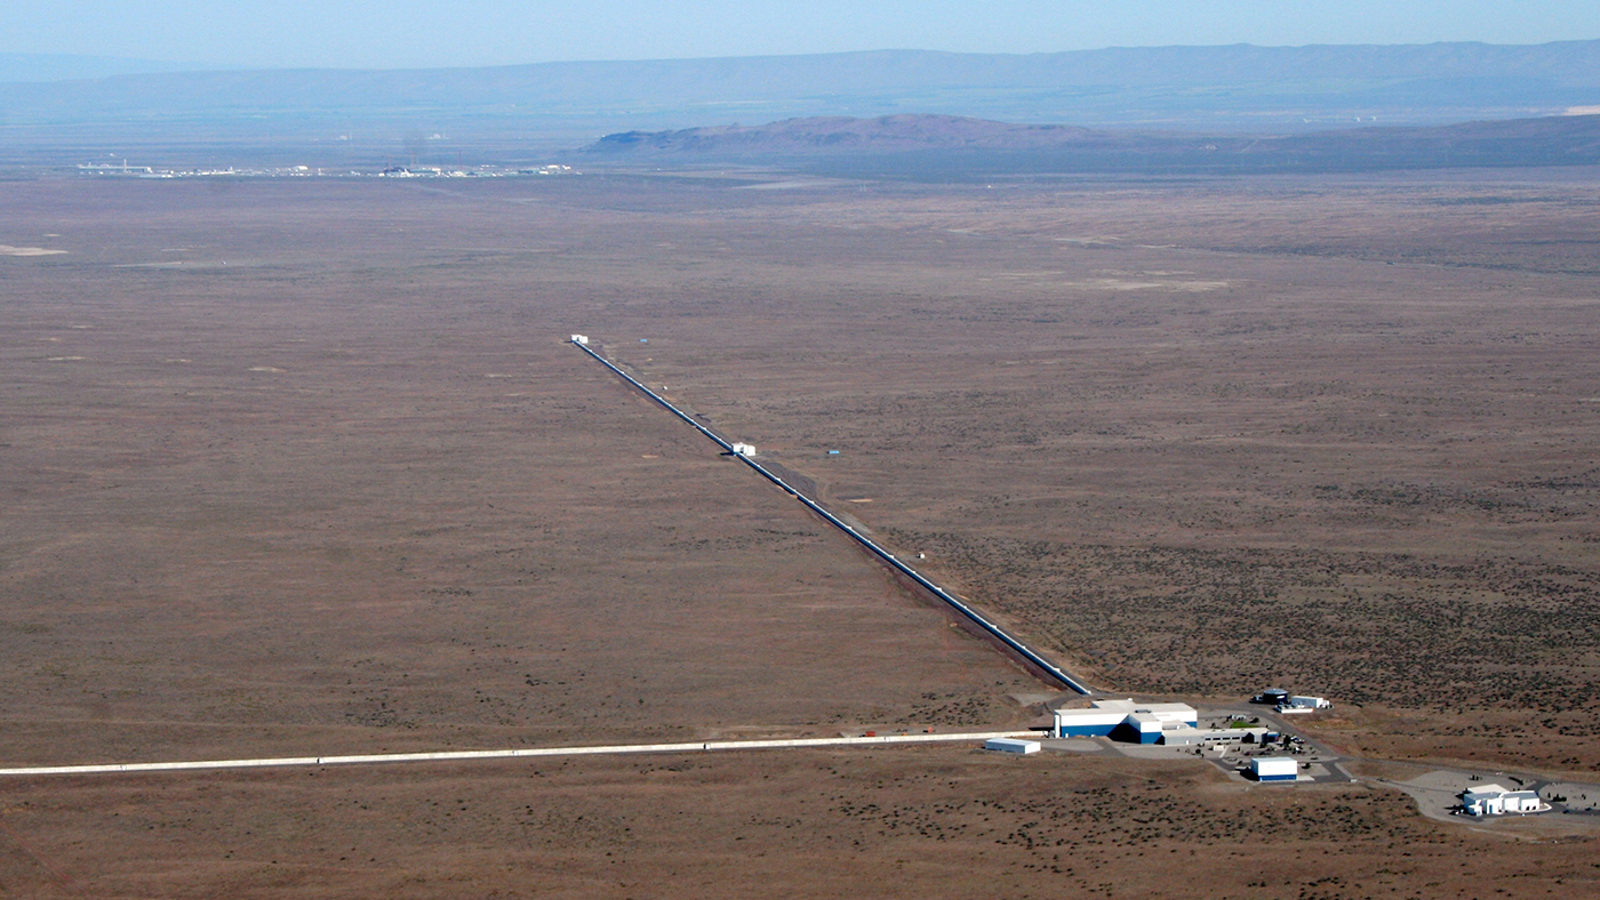 Photo of LIGO aerial